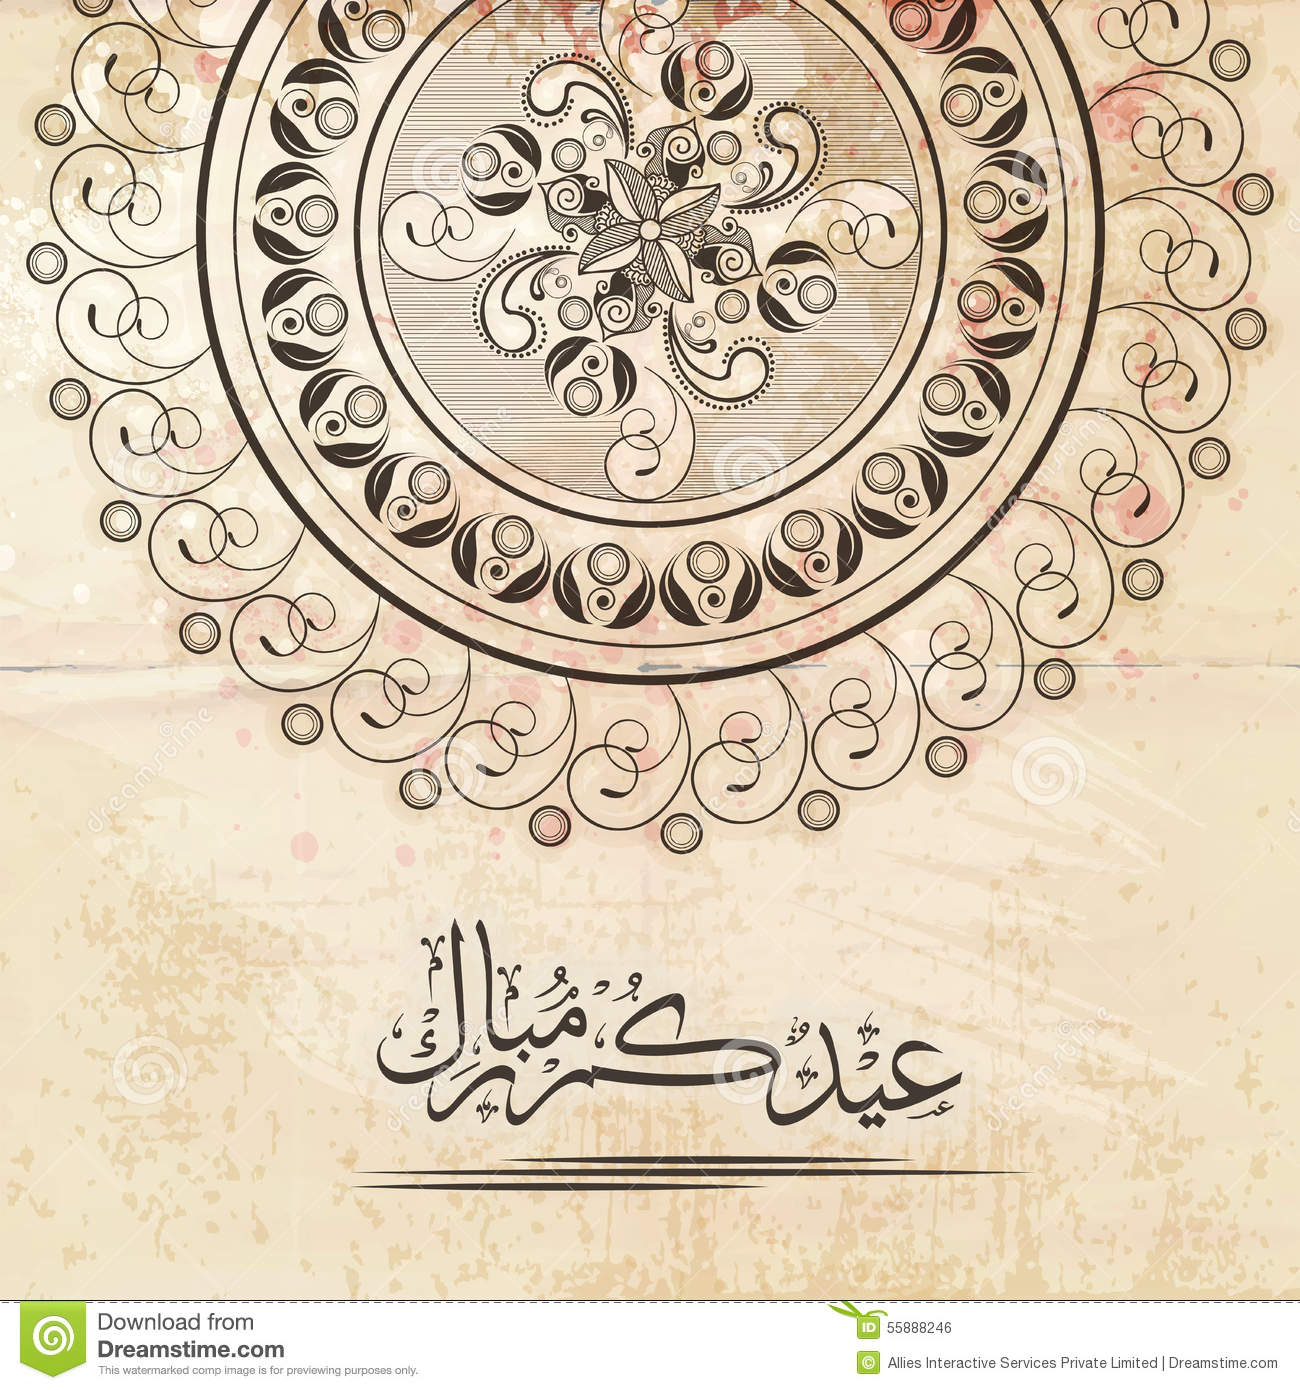 Arabic Text With Floral Design For Islamic Festival Eid